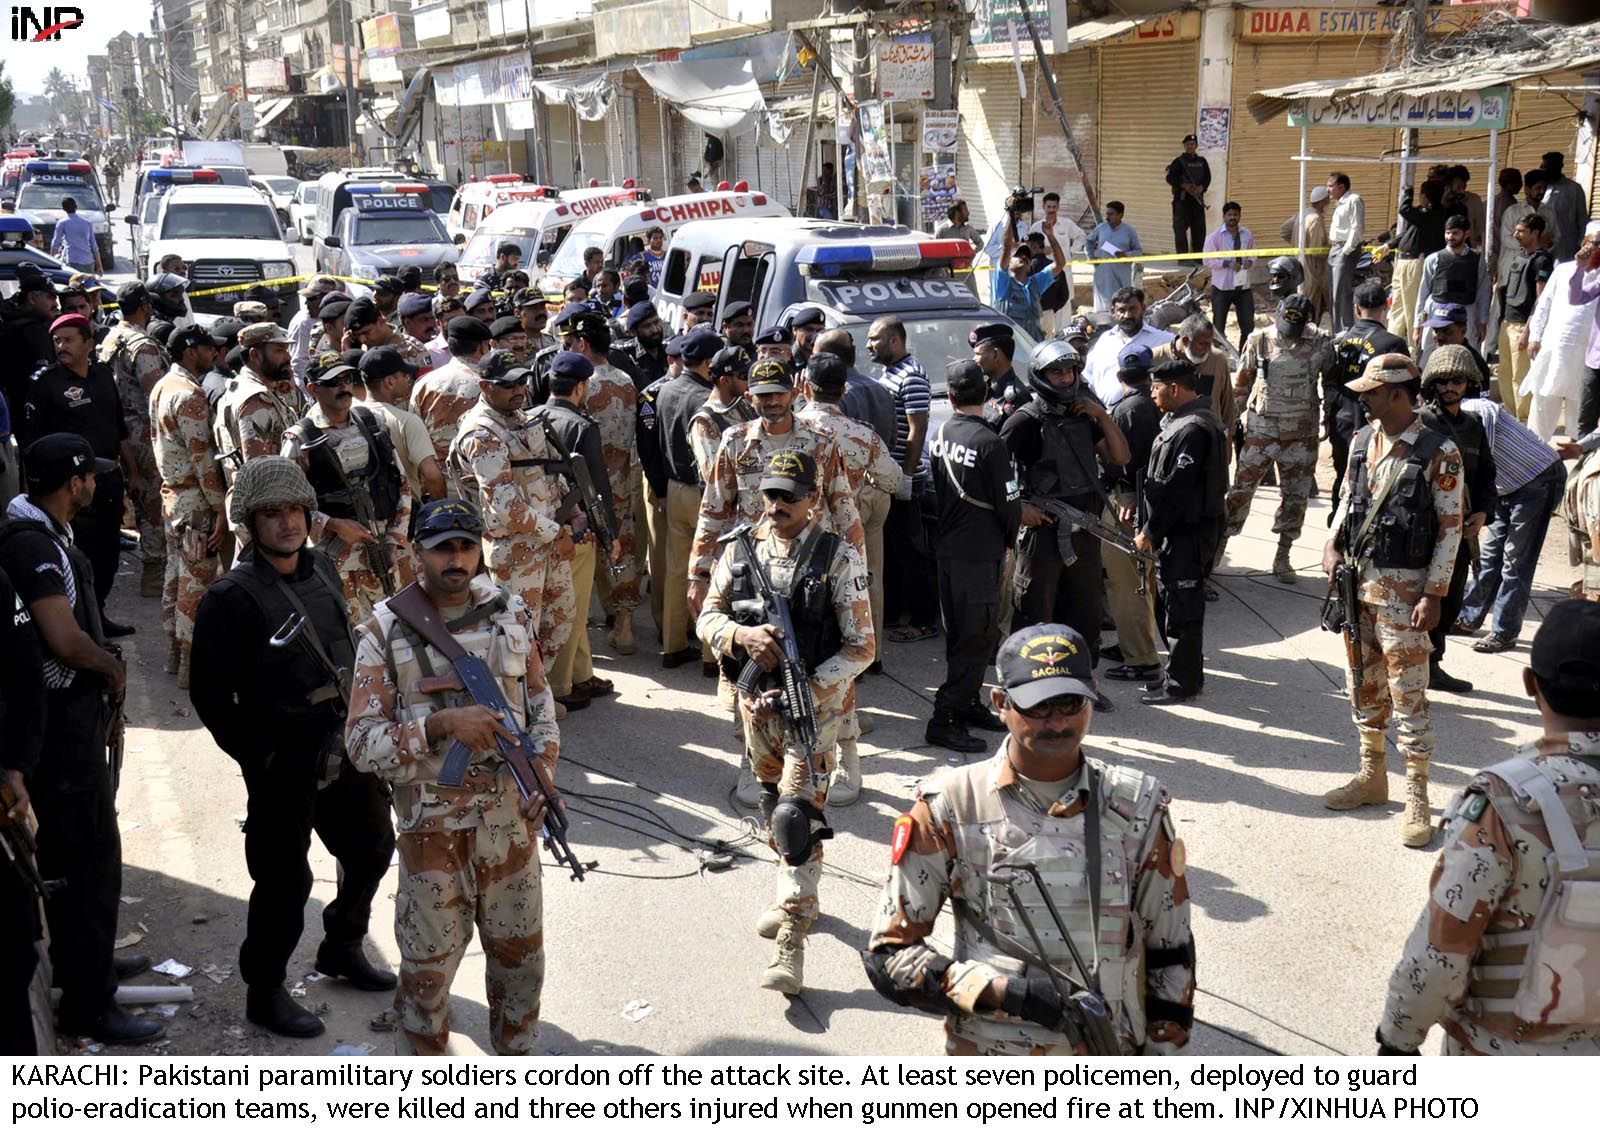 KARACHI: Pakistani paramilitary soldiers cordon off the attack site. At least seven policemen, deployed to guard polio-eradication teams, were killed and three others injured when gunmen opened fire at them. INP/XINHUA PHOTO